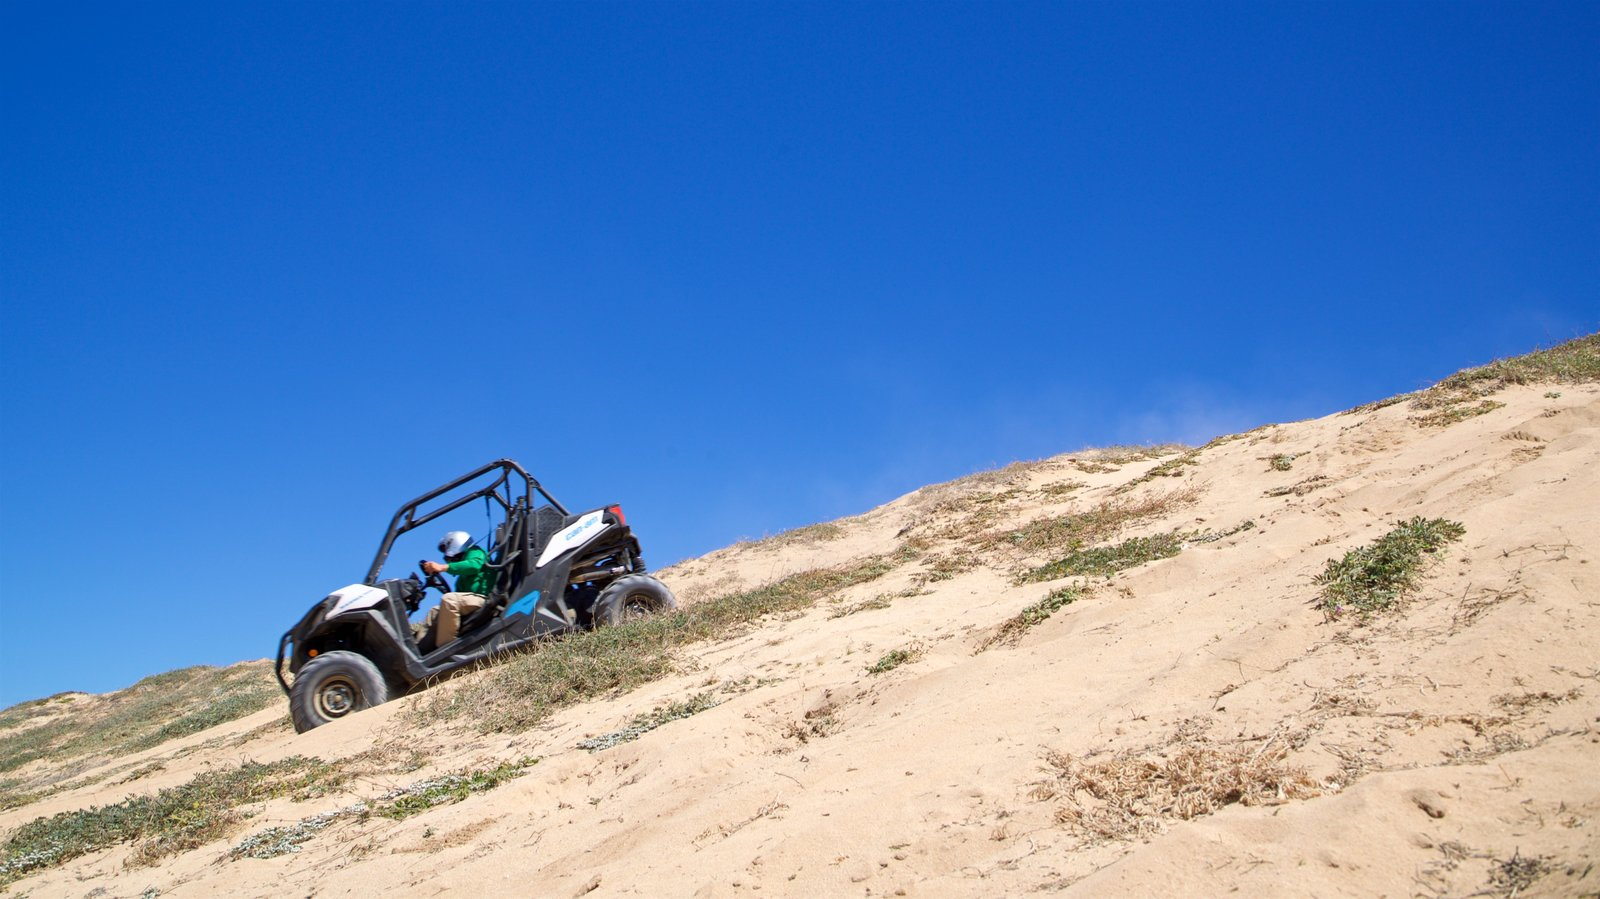 Migrino showing a sandy beach and 4 wheel driving